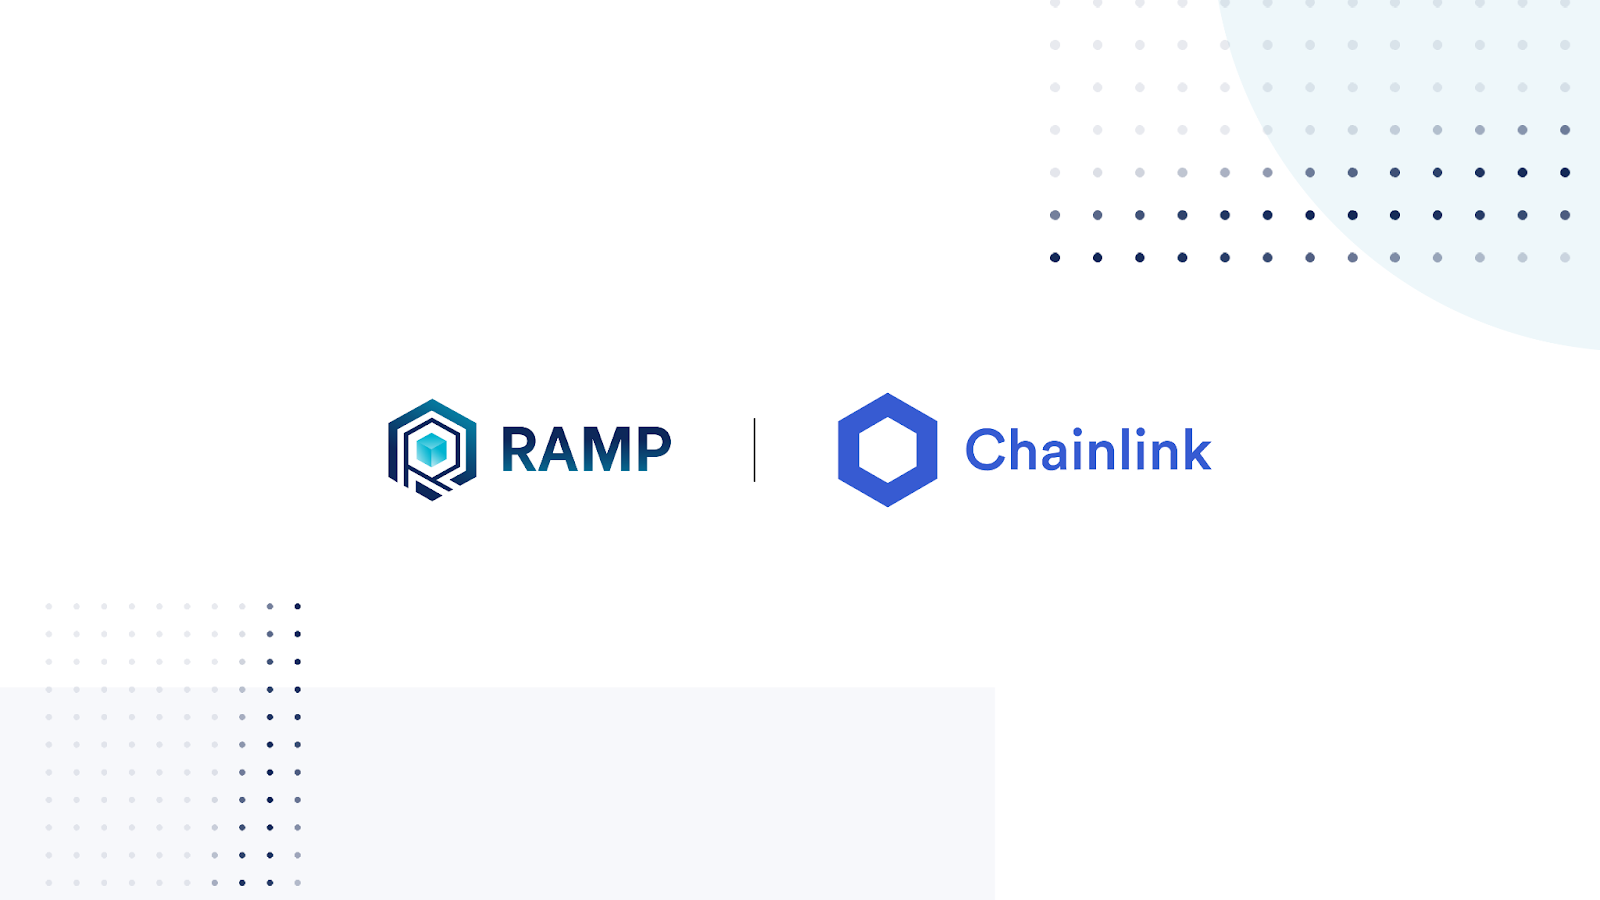 Chainlink Adds RAMP/USD Price Oracle and Secures RAMP's Multi-Chain Staked Liquidity Platform